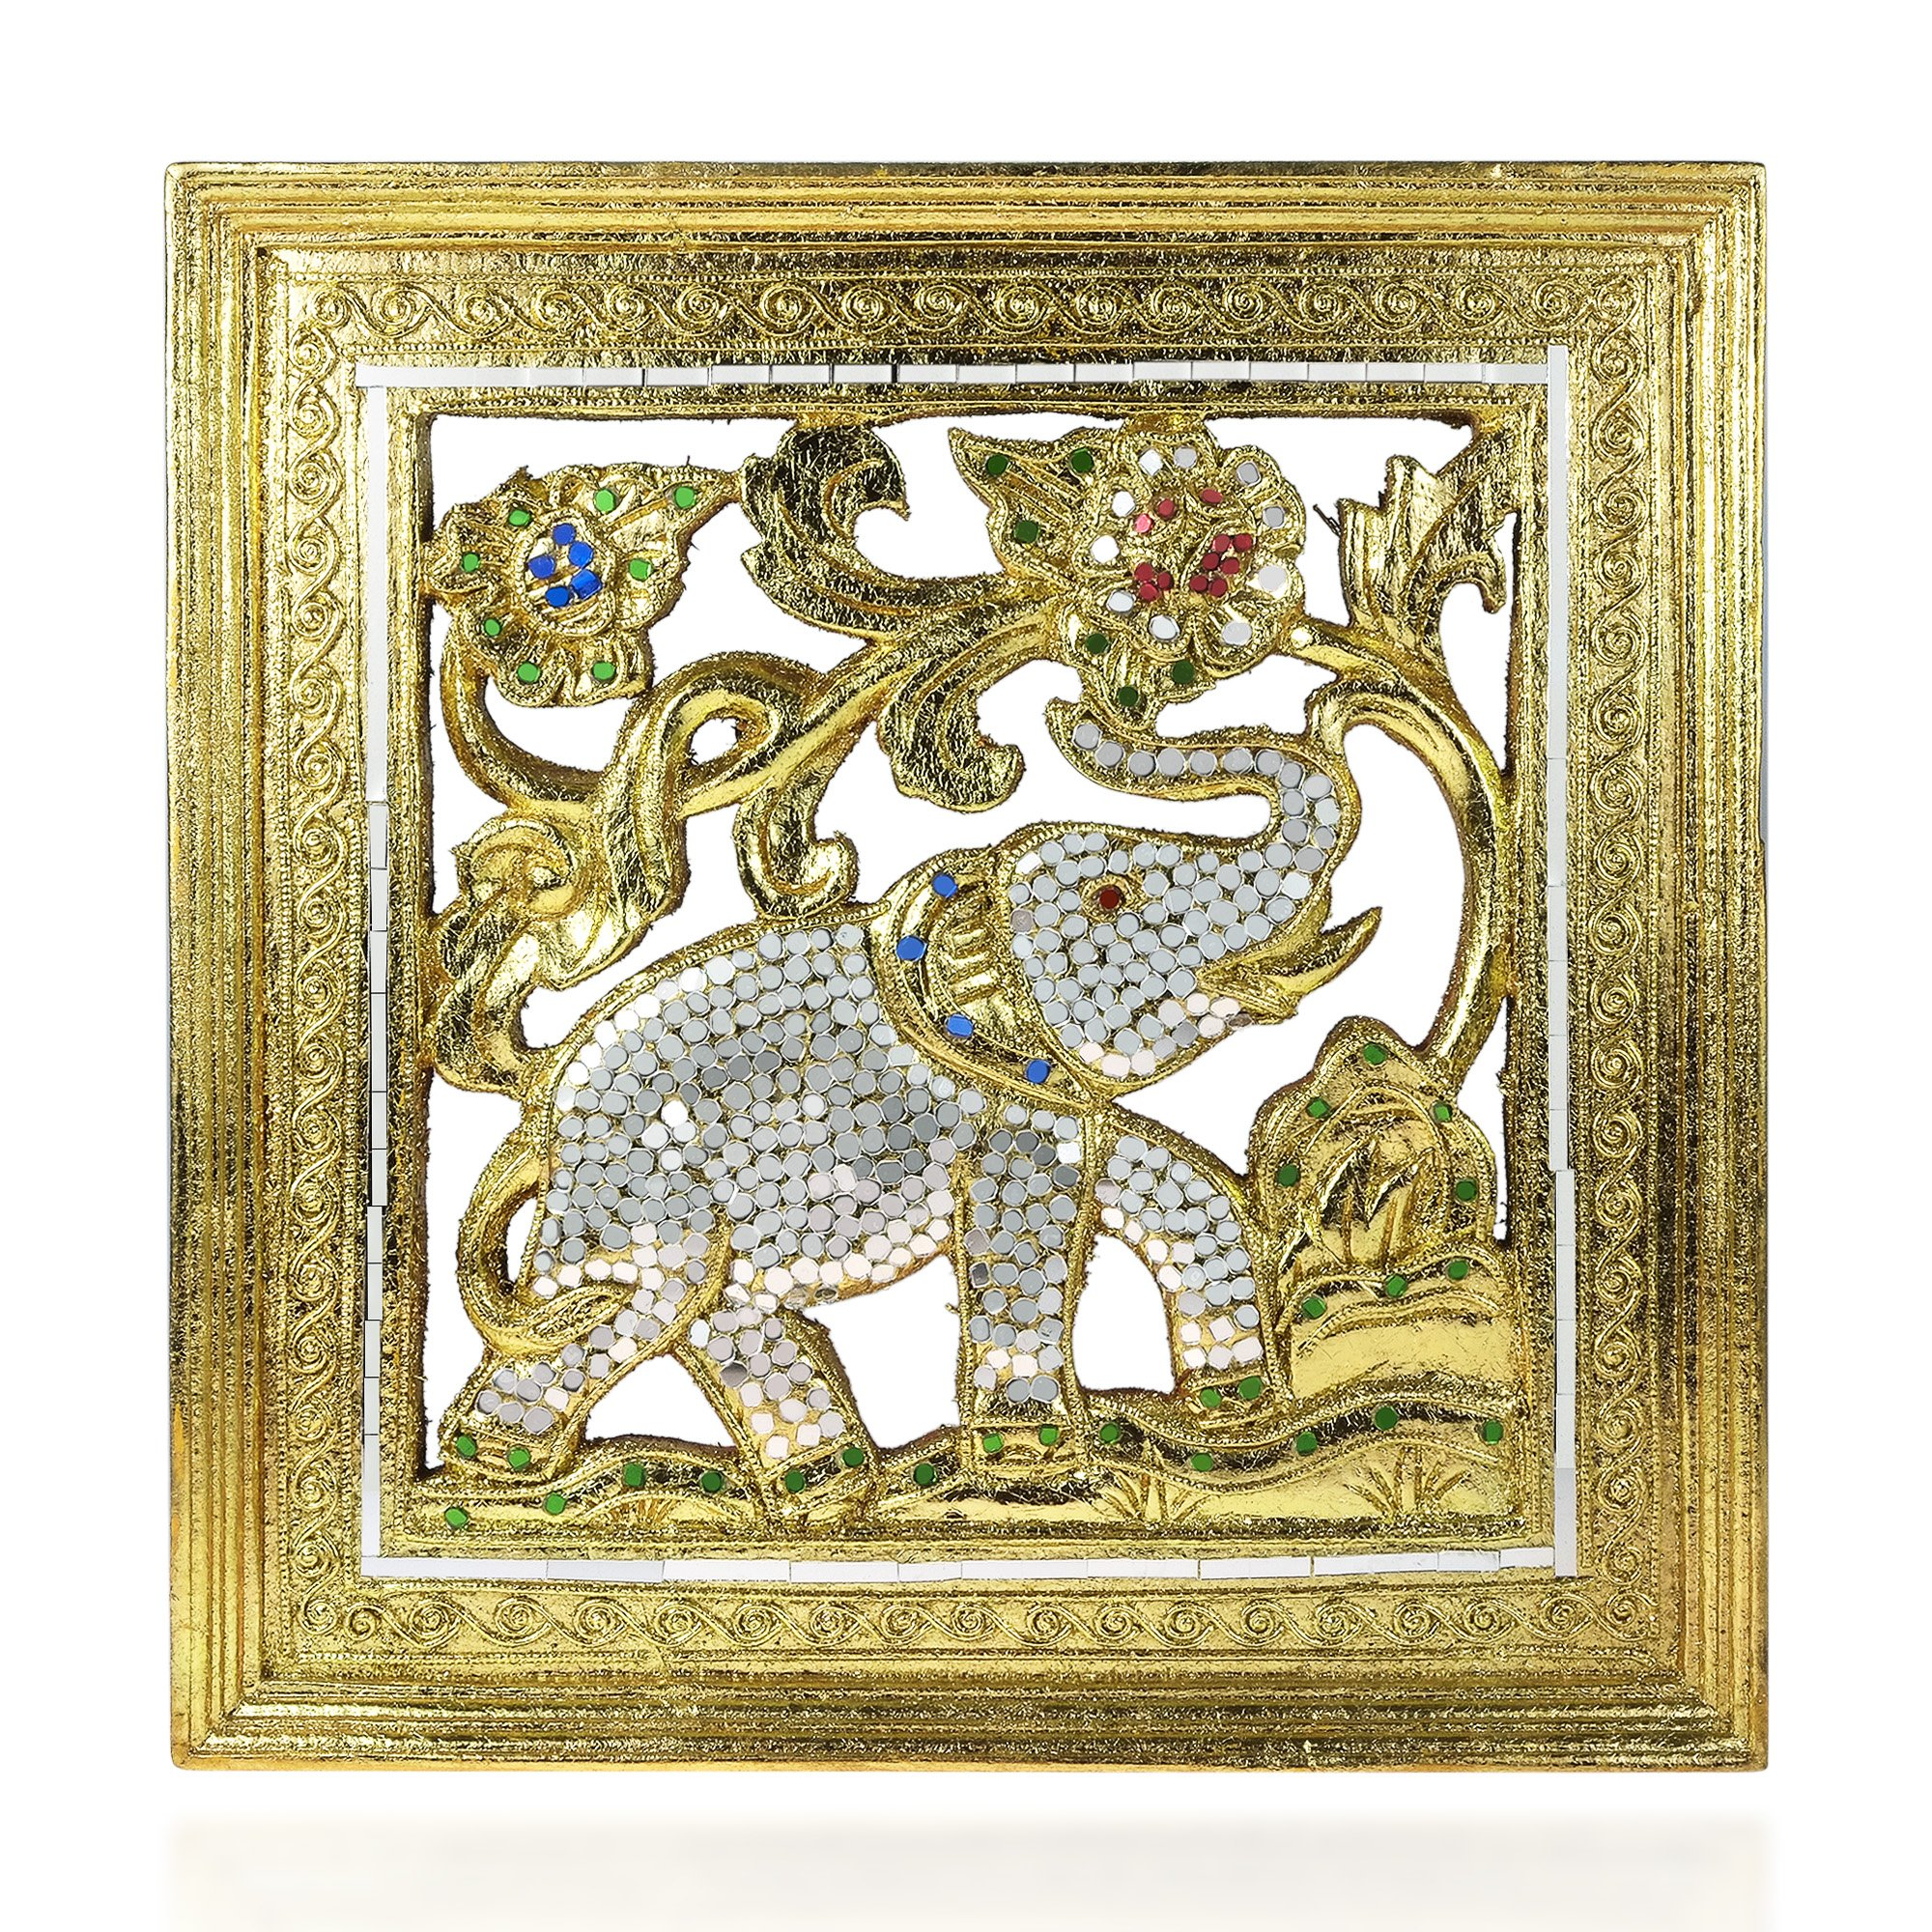 Elephant Jubilee Gilded 24k Gold-Tone Leaf Mosaic Mirror Carved Rain Tree Wood Frame - Fair Trade Handicraft by Thai Artisans by AeraVida